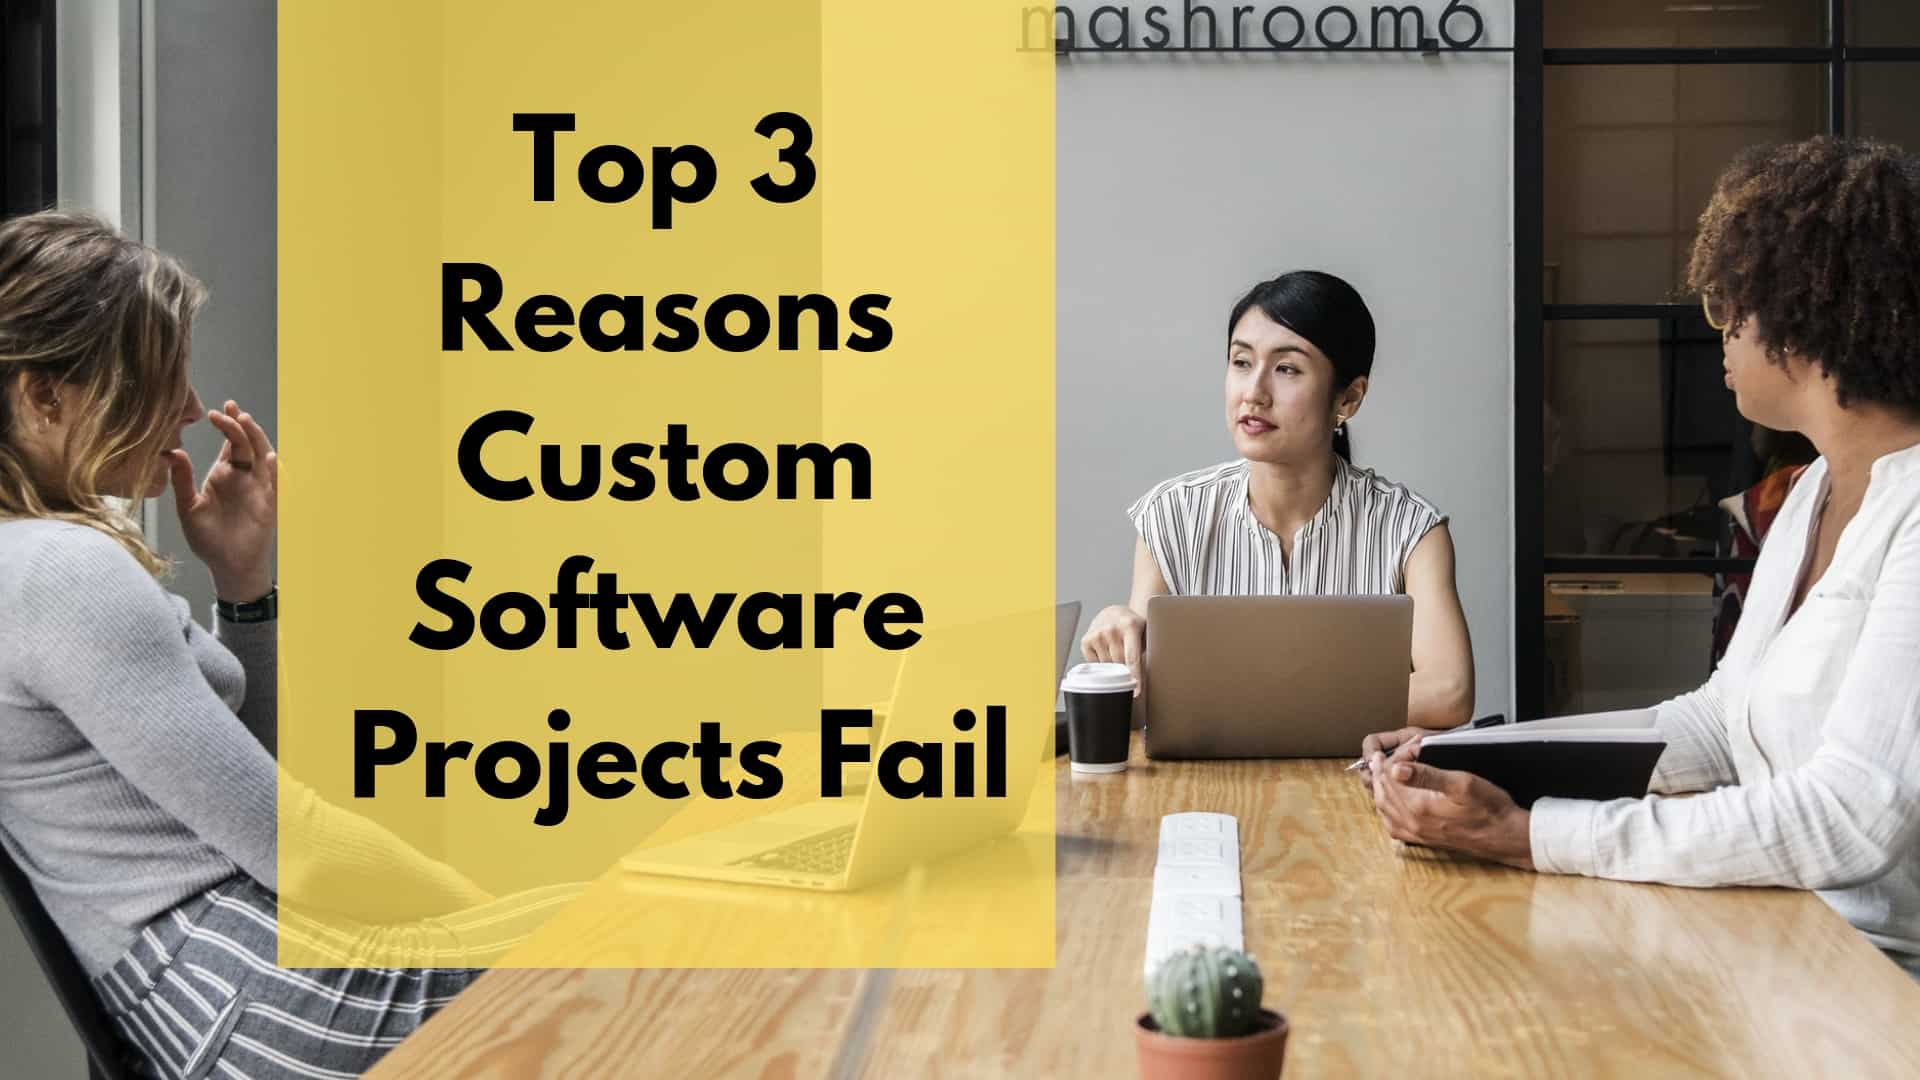 Top 3 Reasons Custom Software Projects Fail